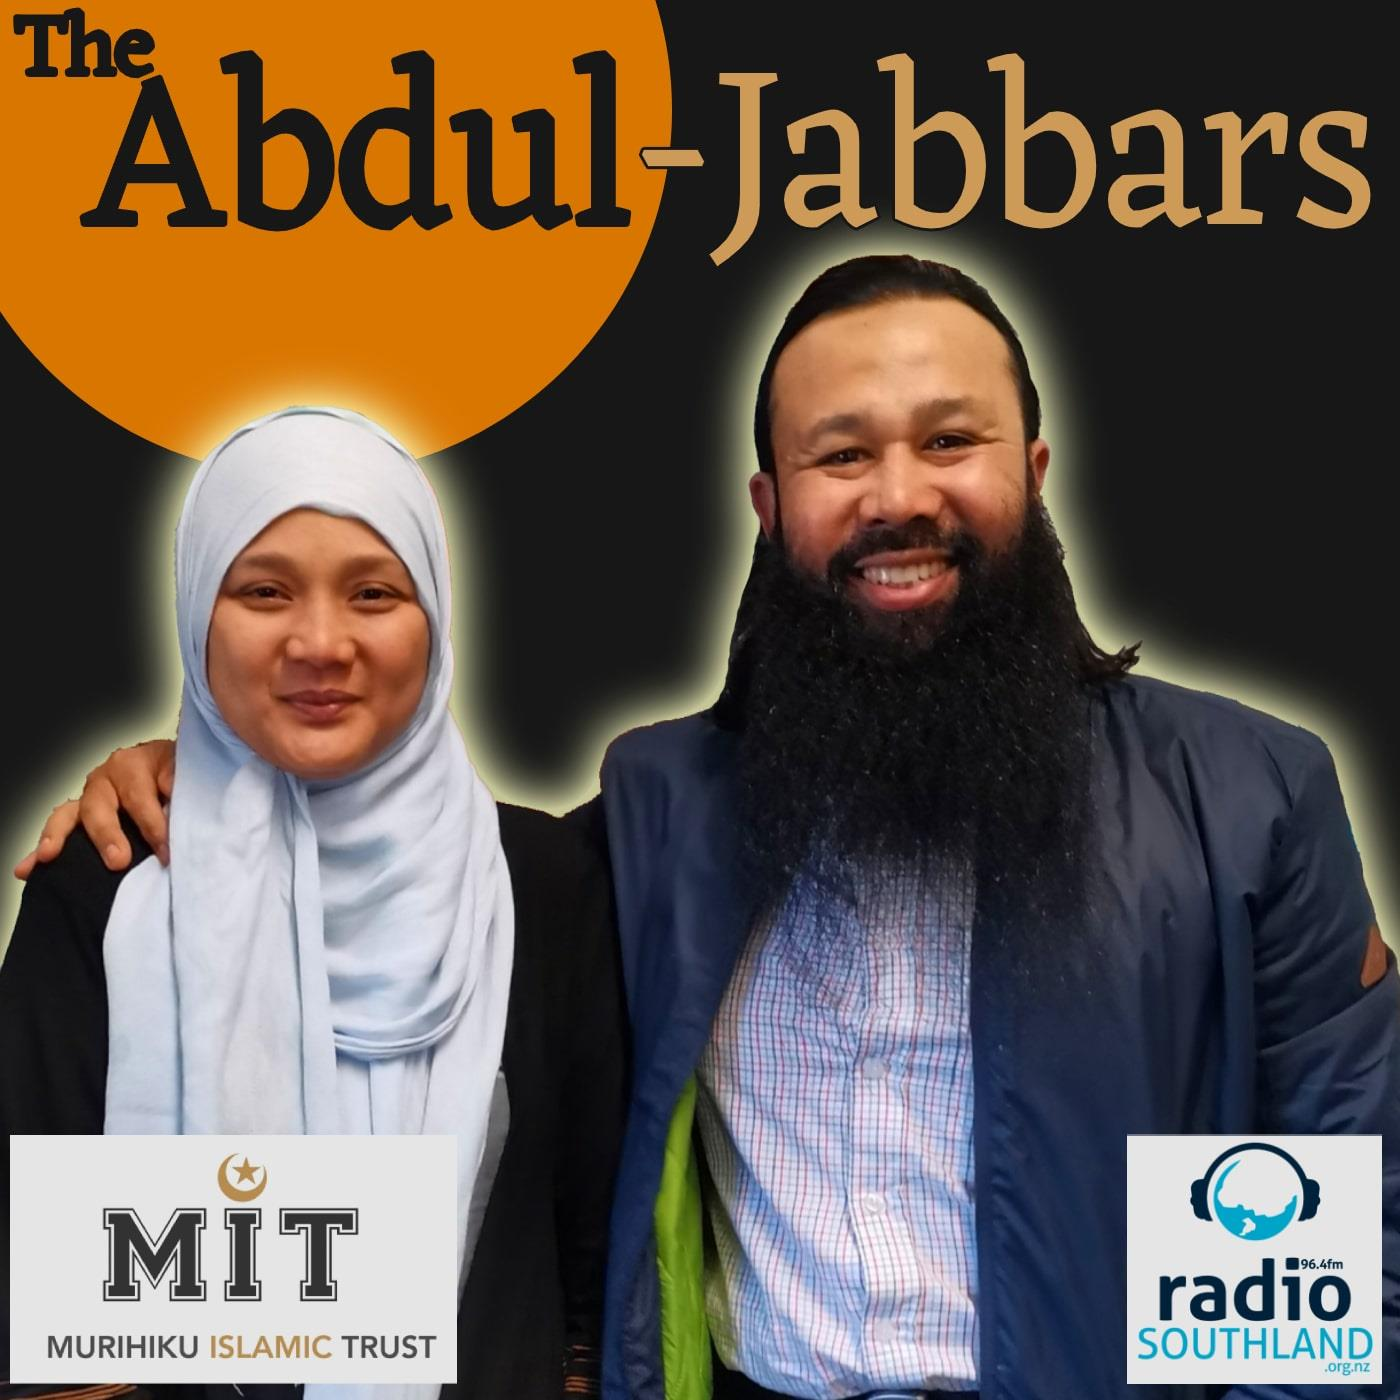 The Abdul-Jabbars - Reza and Silvia